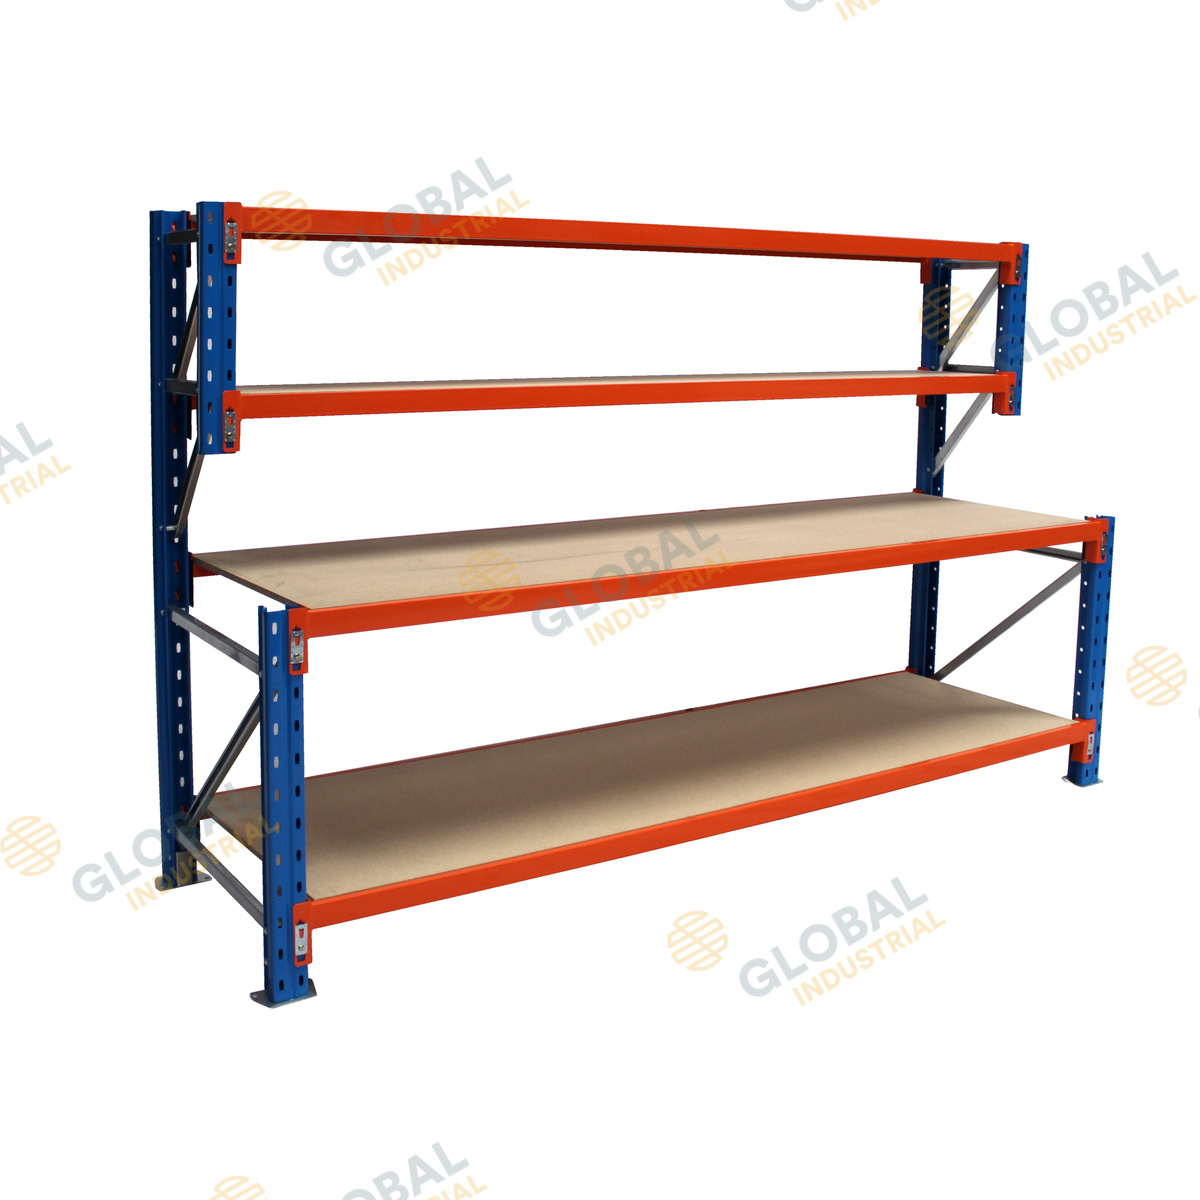 Pallet Racking 4 Tier Workbench